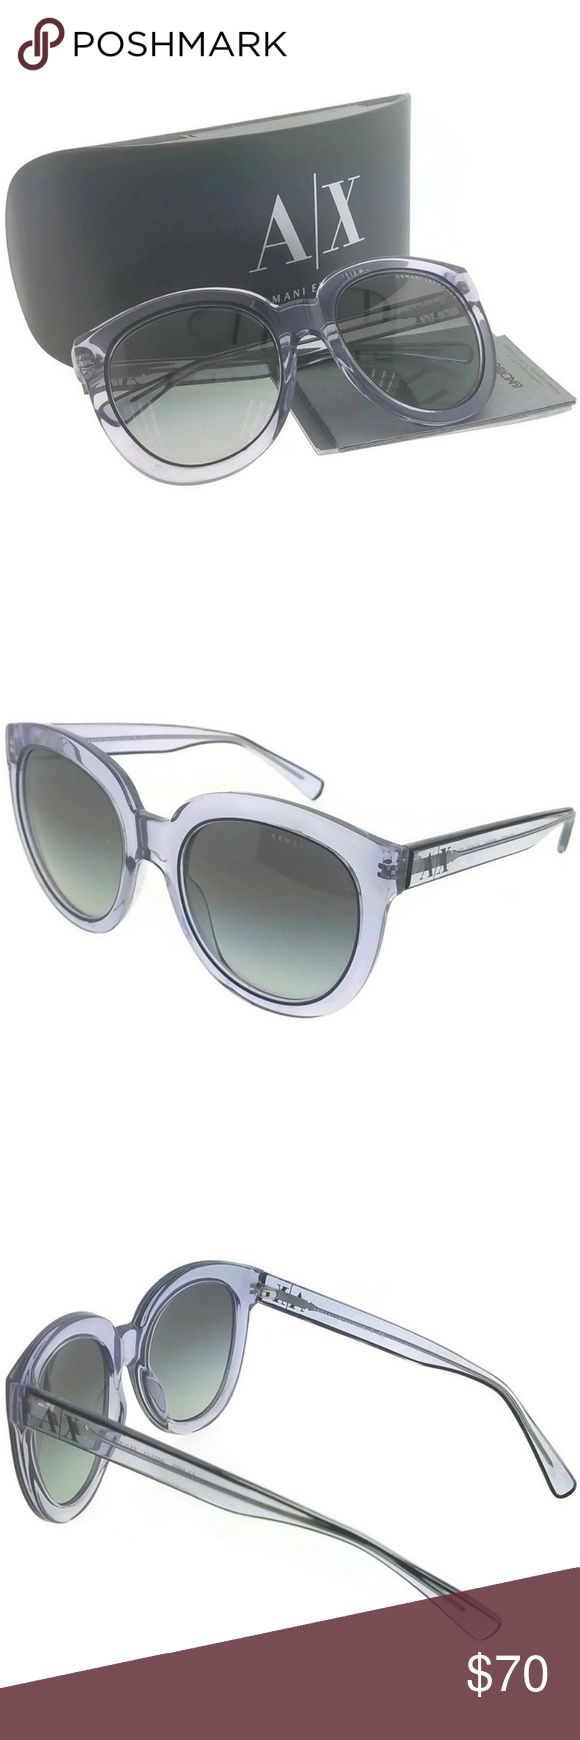 AX4003-803111 Women's Violet Frame Sunglasses New gorgeous authentic Armani Exchange AX4003-803111 violet crystal frame grey Lens 53mm genuine sunglasses with stylish look. Armani Exchange, or A|X, are the fashion-forward label created by Armani. The brand cites street-chic culture, fashionable dance music, freedom, and personal styles as its inspiration. You can see that trendy influence in the versatile Armani Exchange sunglasses line, which offers great style choices for any hip…